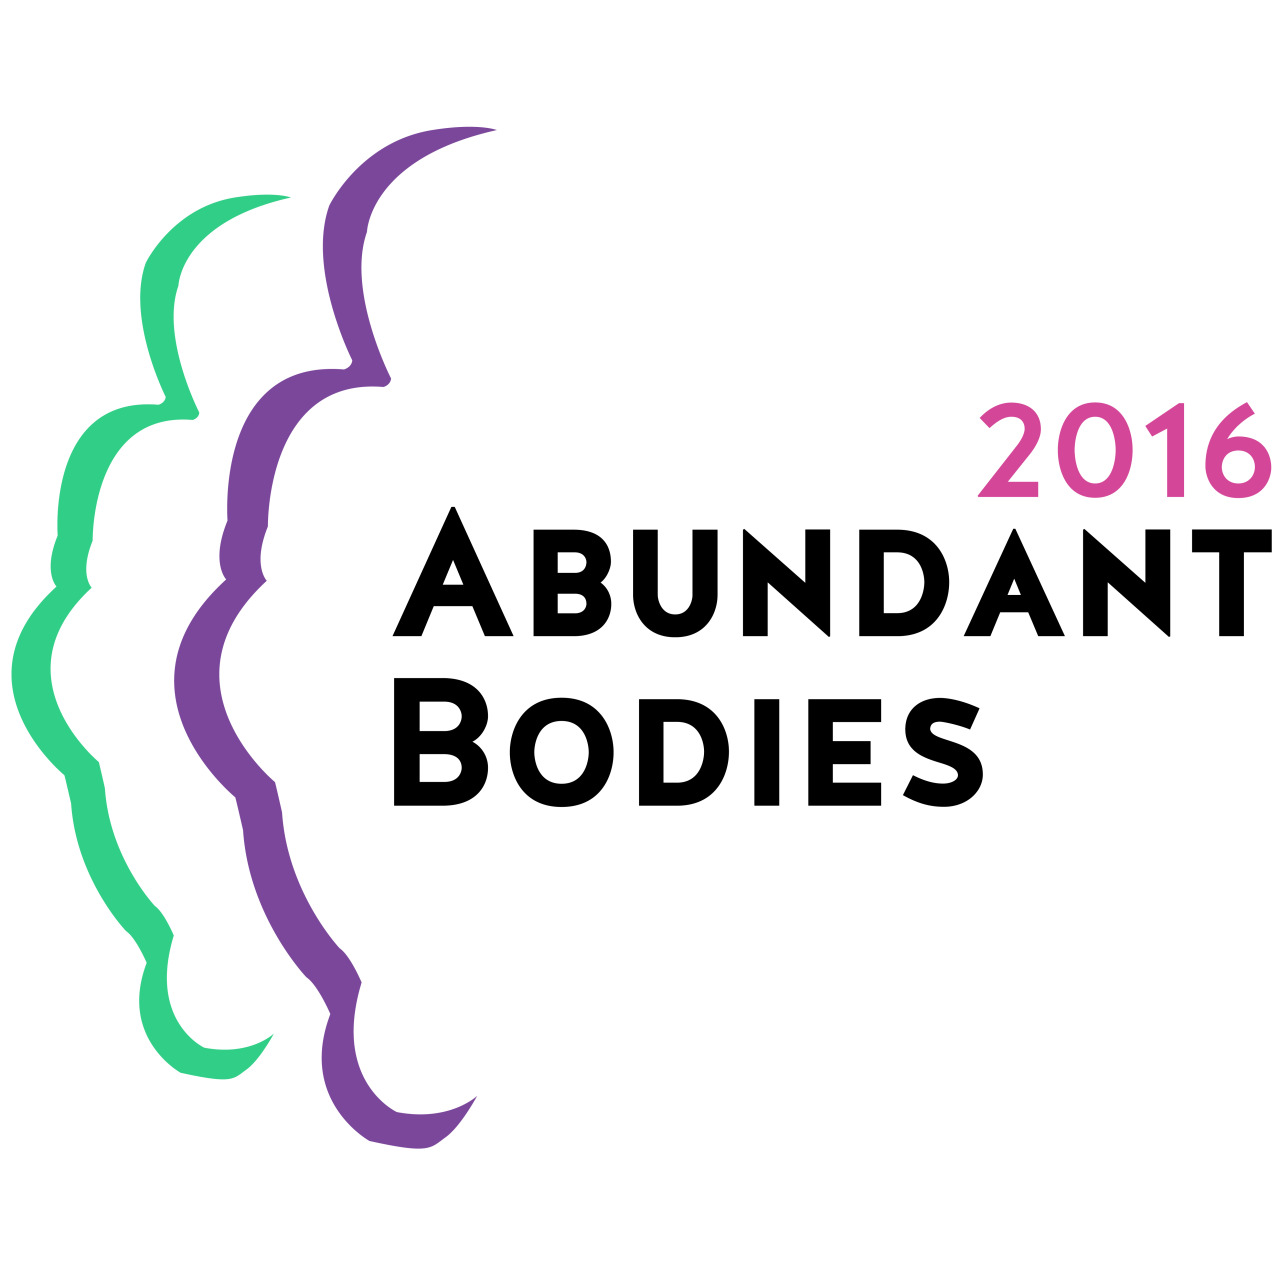 fatbodypolitics:  abundantbodies:  abundantbodies:  Calling All Abundant, Fat, Plus Sized, Succulent, and Thick Peoples From All Over! This year at the Allied Media Conference 2016 (June 16-19 in Detroit,  MI) we are coming back together to continue our conversations, share  skills, experiences, stories, media, knowledge and strategies to build a  more beautiful, body accepting and abundant loving future! The Abundant Bodies Track challenges the ongoing ways mainstream media shames and harms abundant bodies, name fat phobia in our organizing and activism, and create media and practical strategies for resistance, healing and community building. We will broaden the conversation around fat activism by centering this track on the voices of indigenous, Black, people of color, dis/abled, super-sized, trans and queer fat folks. Abundant/thick/fat bodies are the target of so much hate, policing and negativity, even in our organizing communities.  How can we work together to deconstruct fat stigma and other forms of  marginalization while building a stronger and more inclusive fat  community? How can we challenge ourselves to decenter whiteness,  capitalism, ableism, cissexism, heterosexism and classism while we  explore what it means to be fat? We will explore these questions and create spaces to challenge the  ongoing ways mainstream media shames and harms abundant bodies. Our goal  is to create media and practical strategies for resistance, healing and  community building. We are looking for a variety of session proposals that may include, but are not limited to, the following: Fat community 101 How to love your body Ally building for thin folks and privileged fat folks Body autonomy and social media Anti-racist fat activism Skillshares and tools for surviving and thriving Bodies, health and movement Breaking down connections between health and weight Body movement / dance / practice for all bodies Fat sexuality Super-sized community members Fatness at its intersections Fatness and femme identity Fatness and masculinity Sci-fi bodies as fat, queer and people of color Dis/ability and fatness History of indigenous / people of color / Black / trans / dis/ability / supersize fat activism Tools for young fat folks Breaking down discussions about obesity through race, class, gender and other identities Proposals are due March 11th, 2016 at midnight. Submit YOURS by filling out the form linked here. If you have any questions regarding your proposal or this track,  please contact us via on the Abundant Bodies Discussion Page on AMP Talk  or at abundantbodies@gmail.com. **Abundant Bodies and the Allied Media Conference is committed to  creating a space that allows for access to all community members  regardless of economics. We will be fundraising in the near future to  make sure we can support all of the session coordinators who need it in  order to give as many voices in fat community the platform they deserve. PLEASE SHARE!  Only 1 more week to submit your proposal!!!